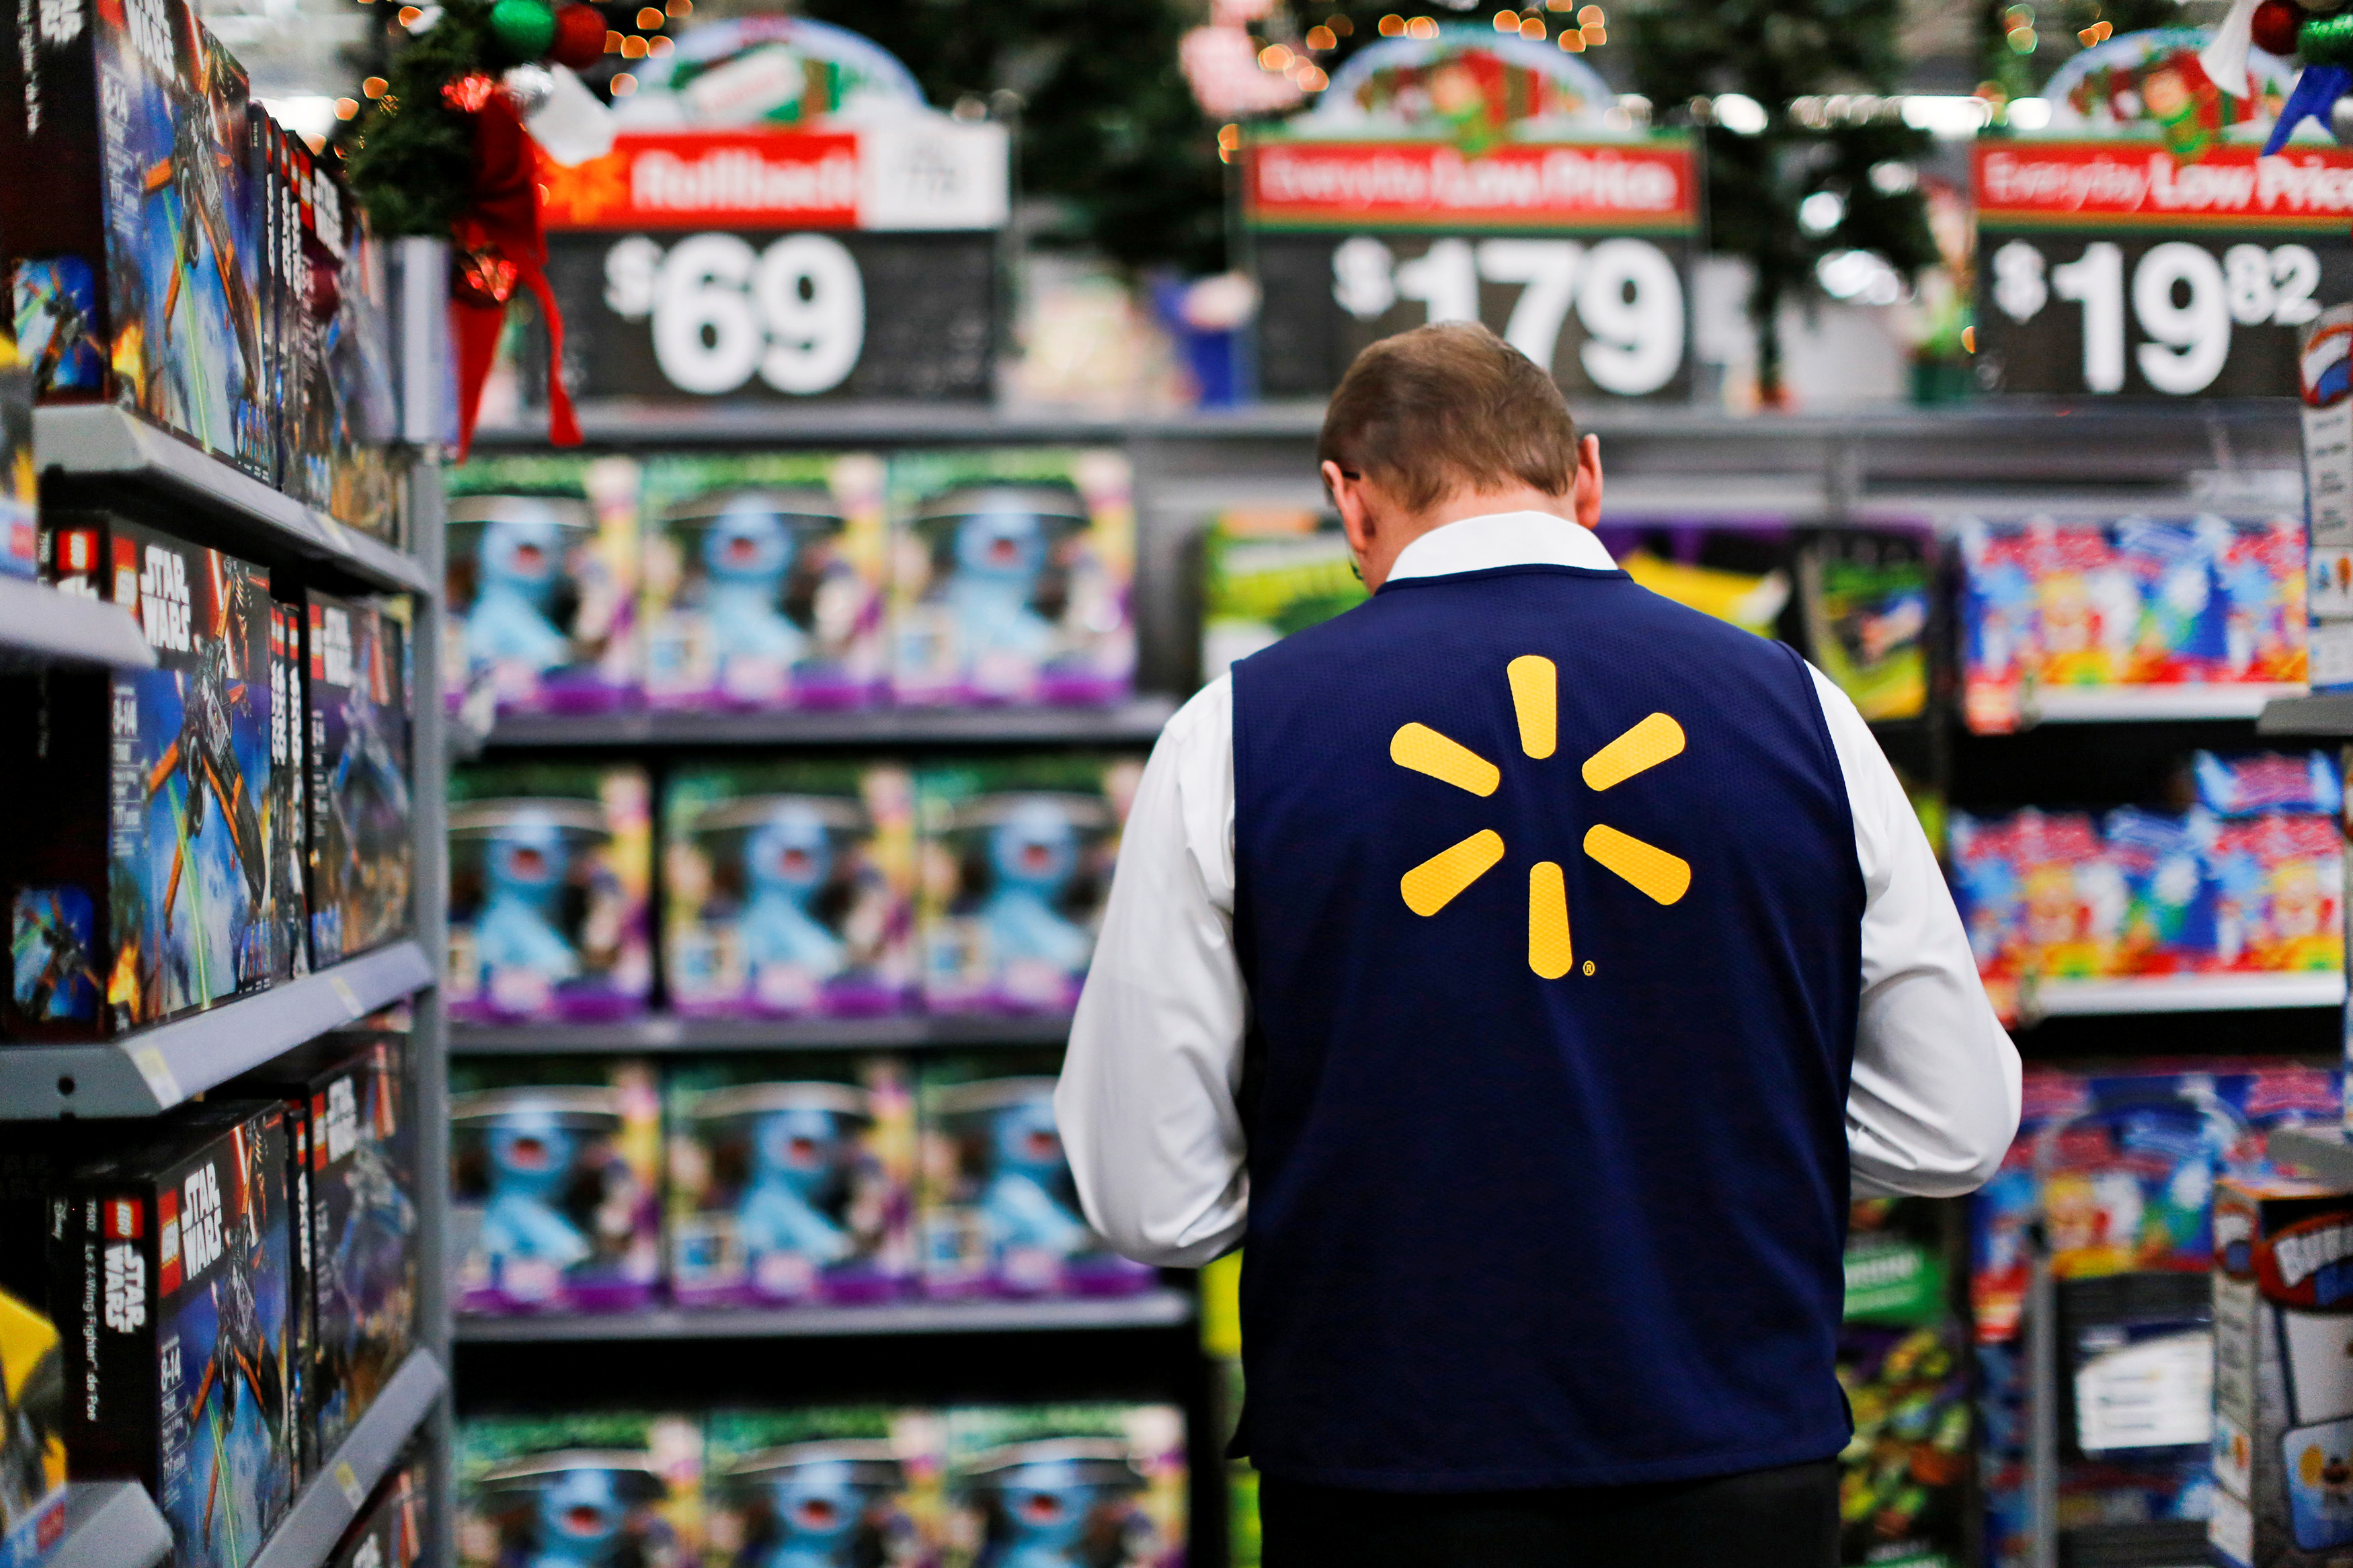 A Walmart worker organises products for Christmas season at a Walmart store in Teterboro